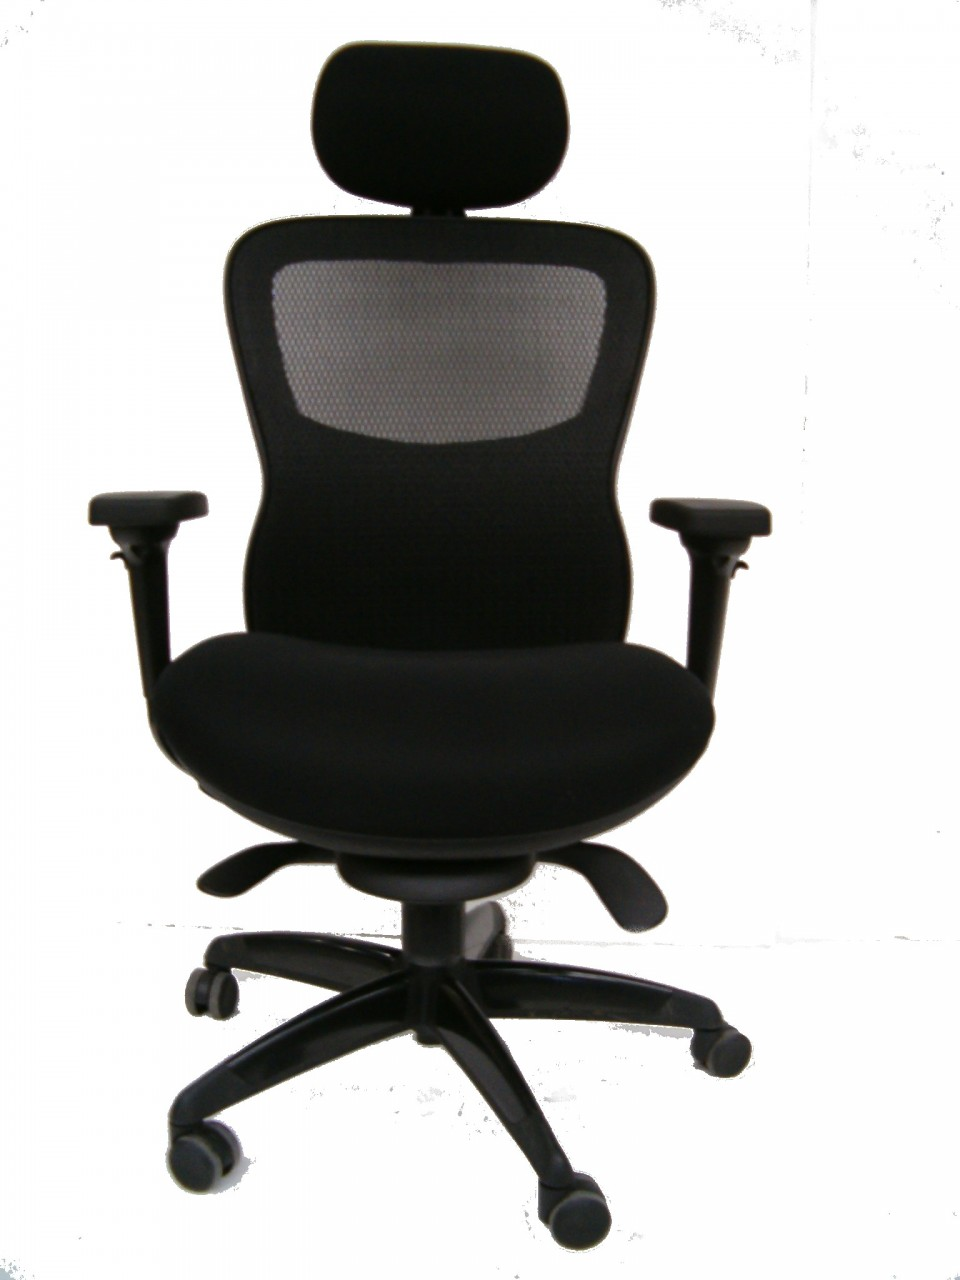 fauteuil de bureau ergonomique athos achat si ges de bureau 588 00. Black Bedroom Furniture Sets. Home Design Ideas